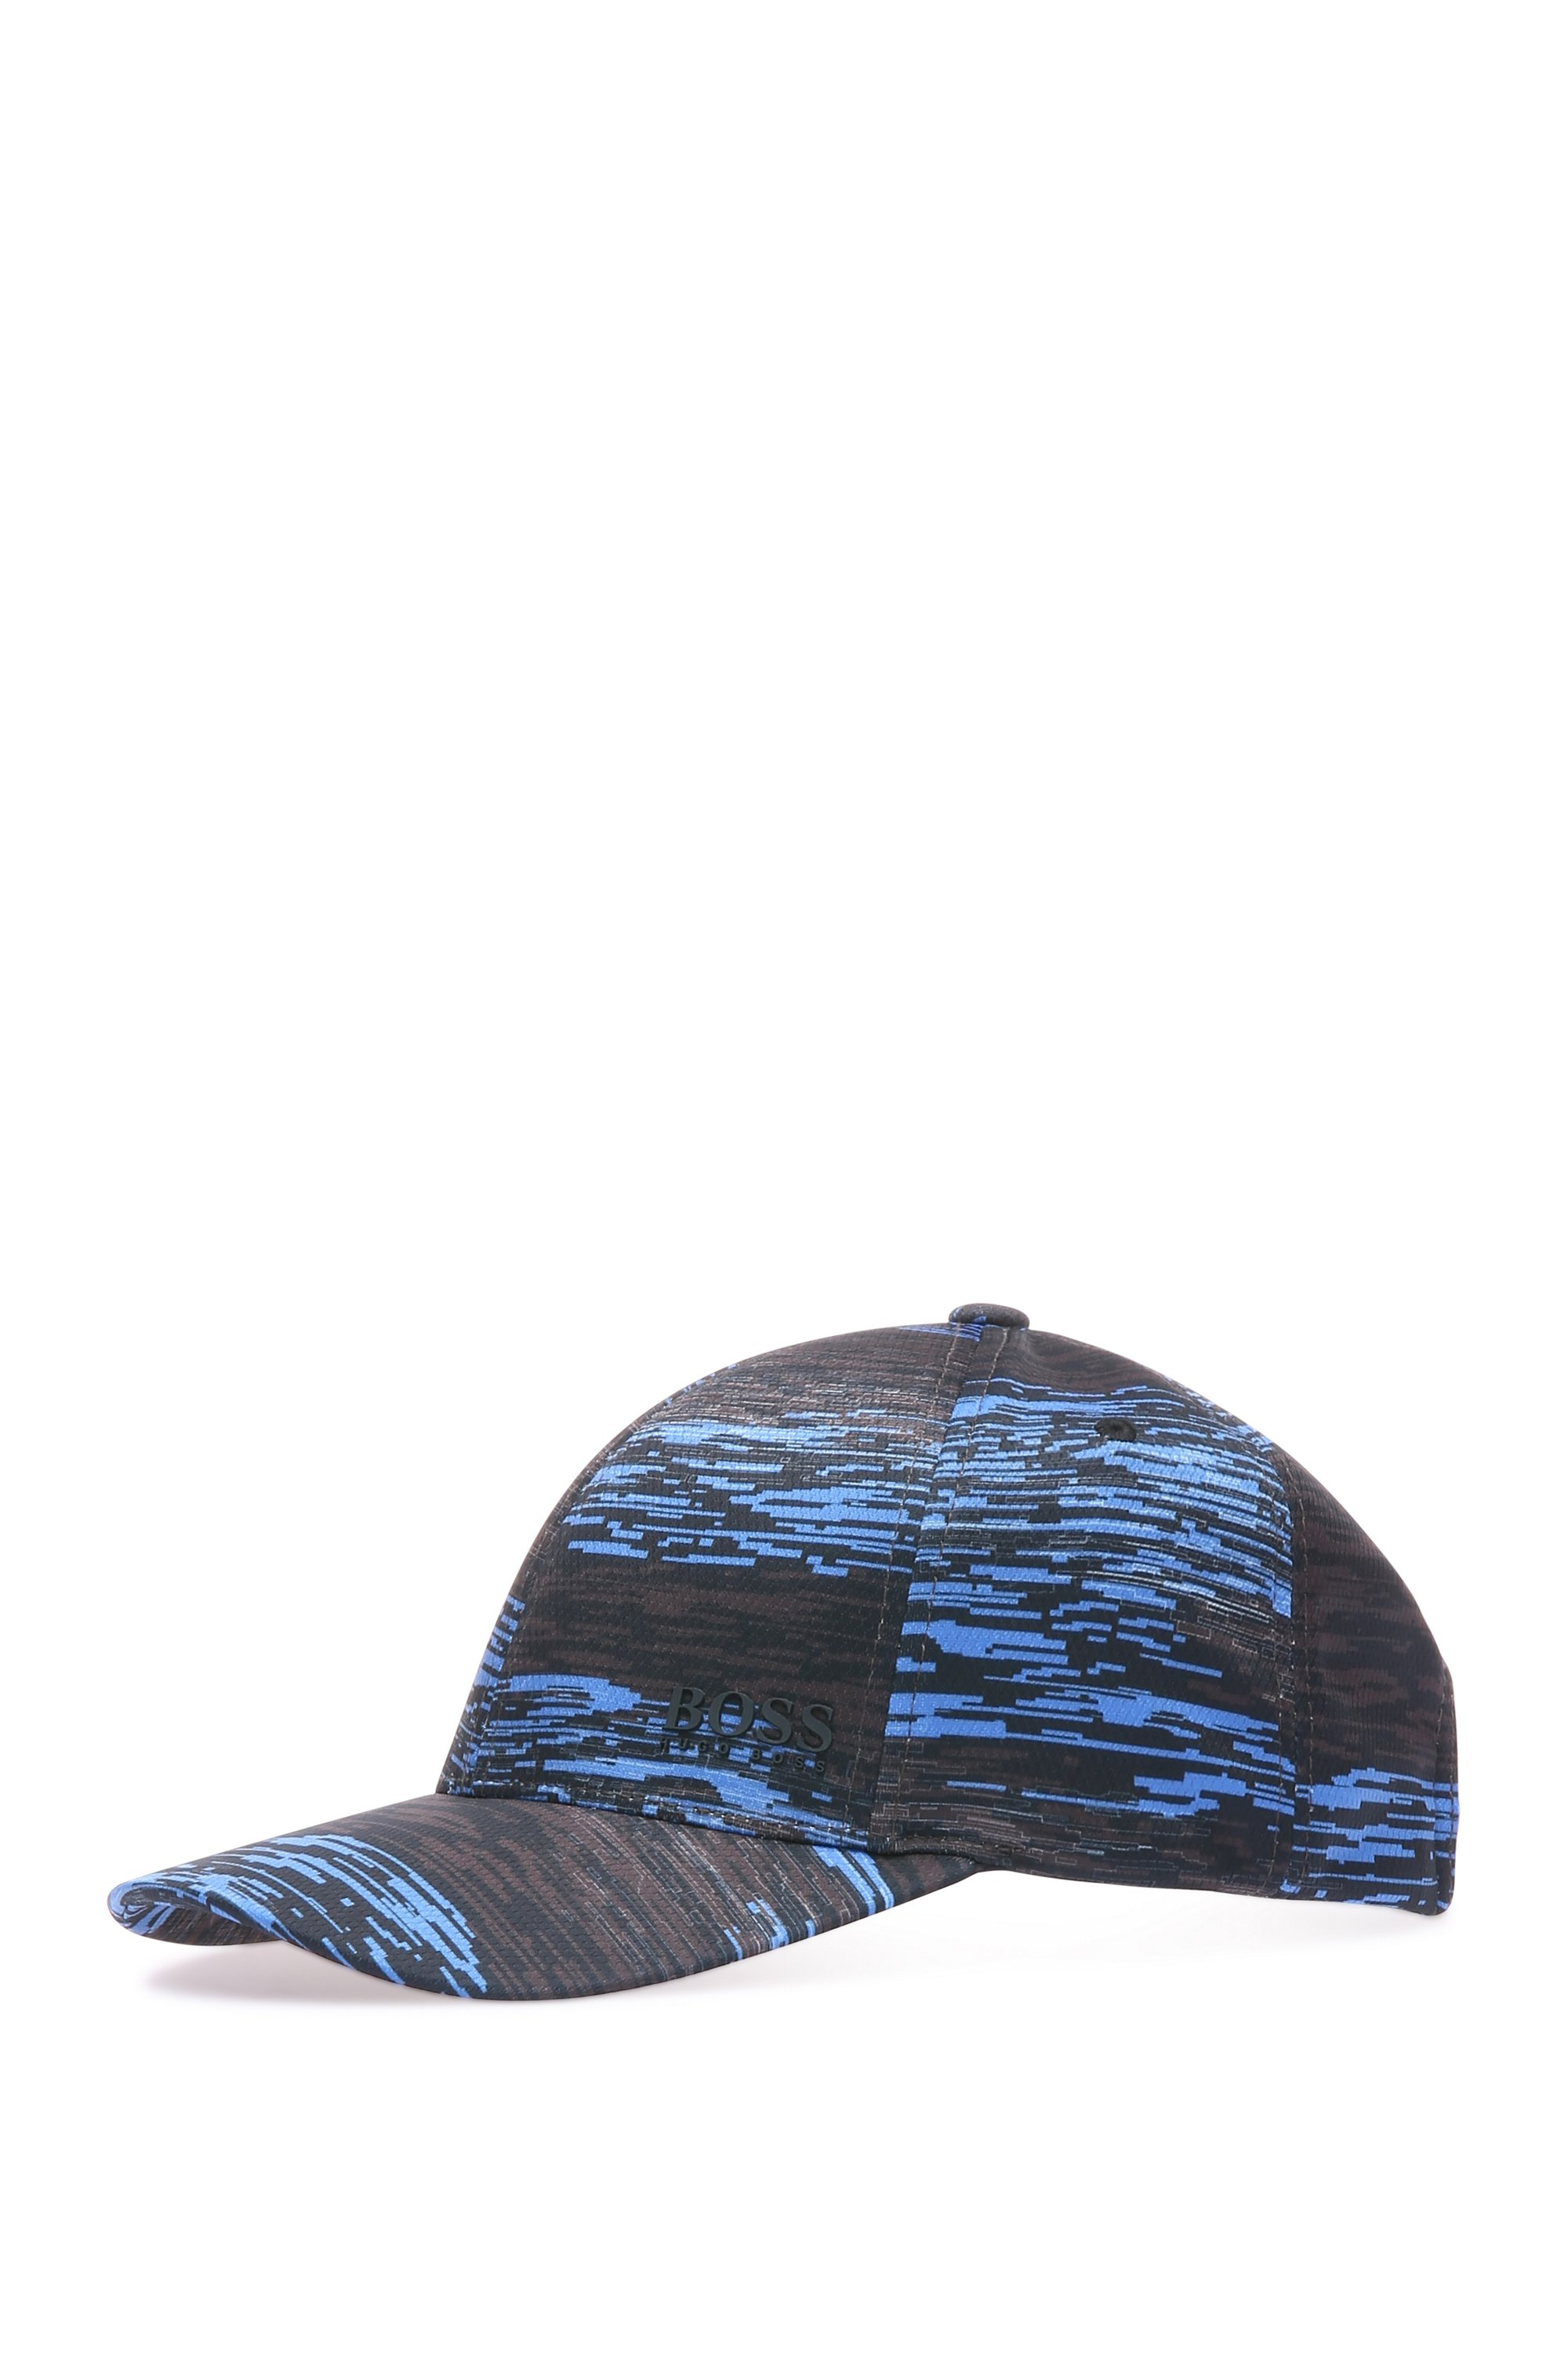 Baseball Cap with Pattern | Printcap, Dark Blue